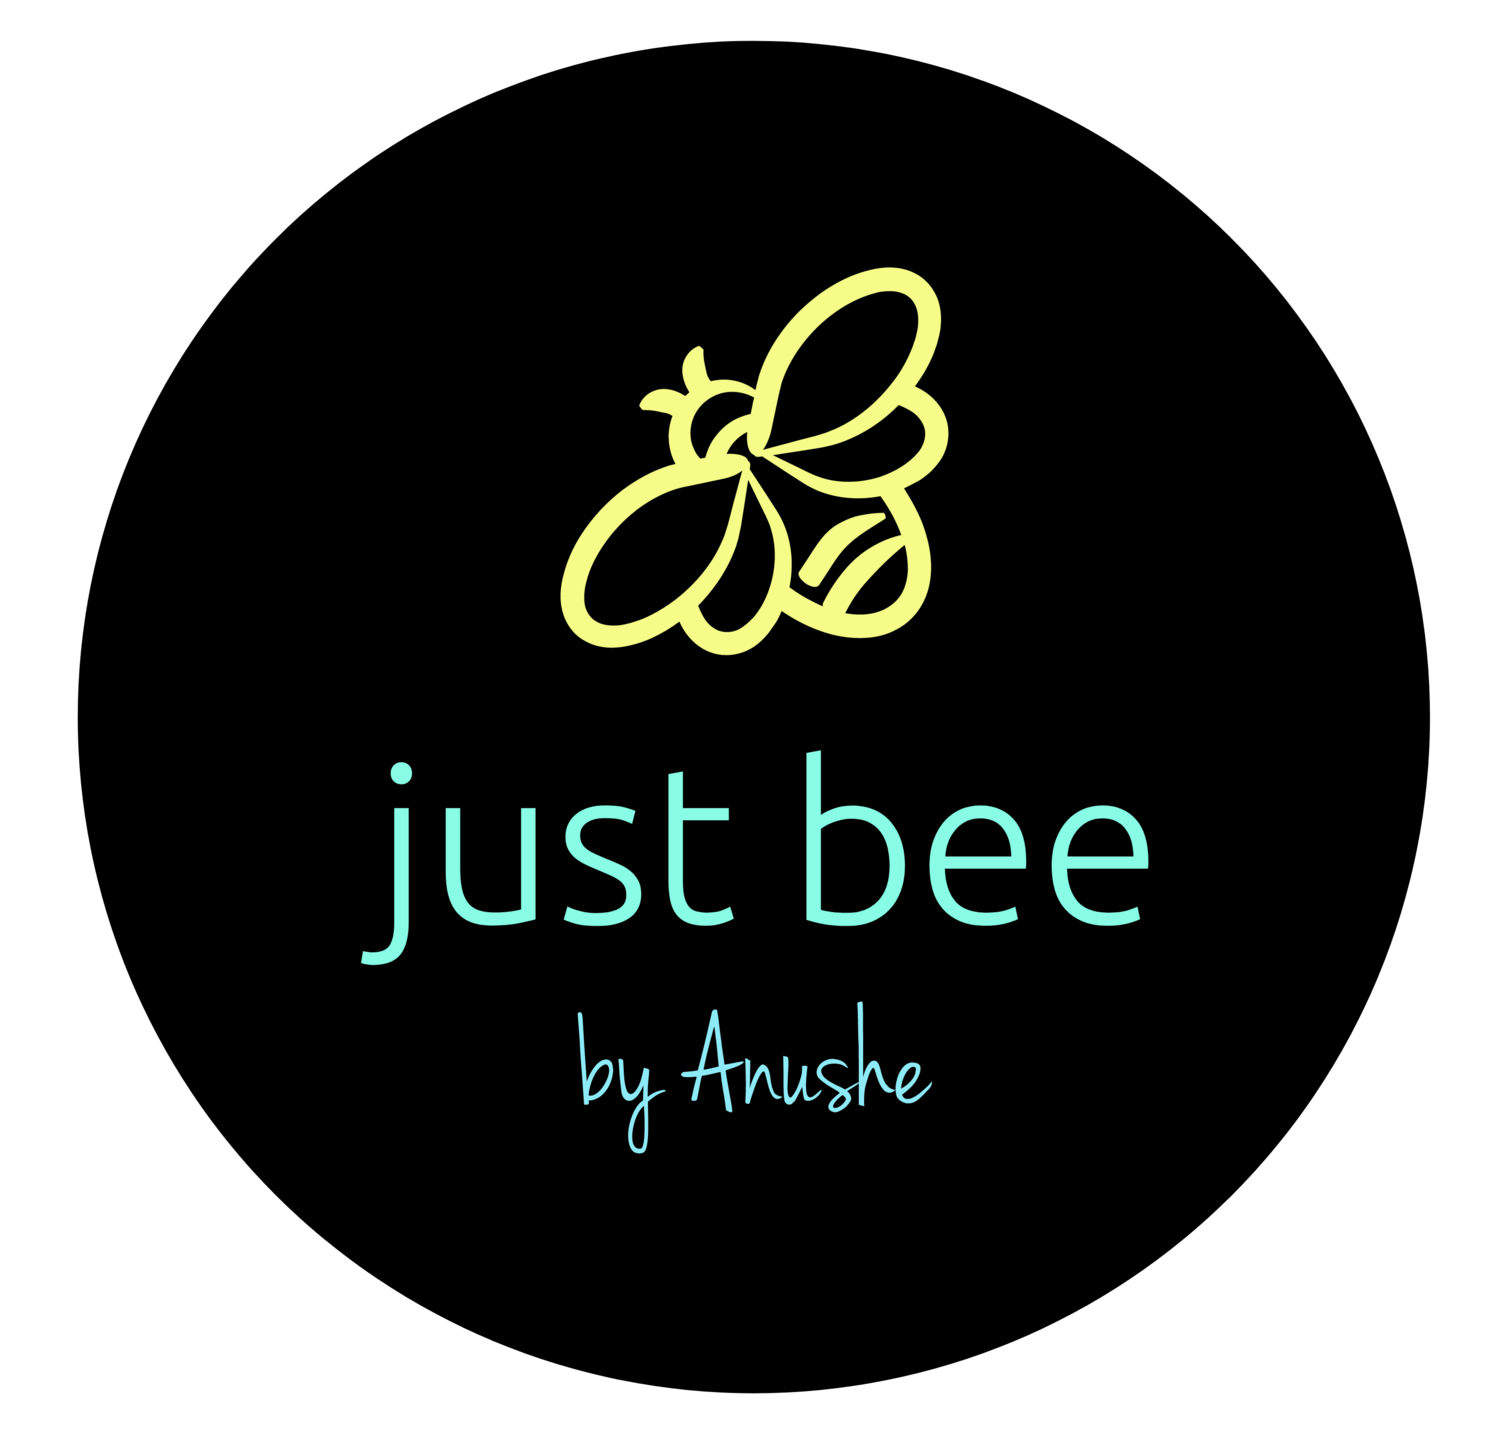 Just Bee by Anushe